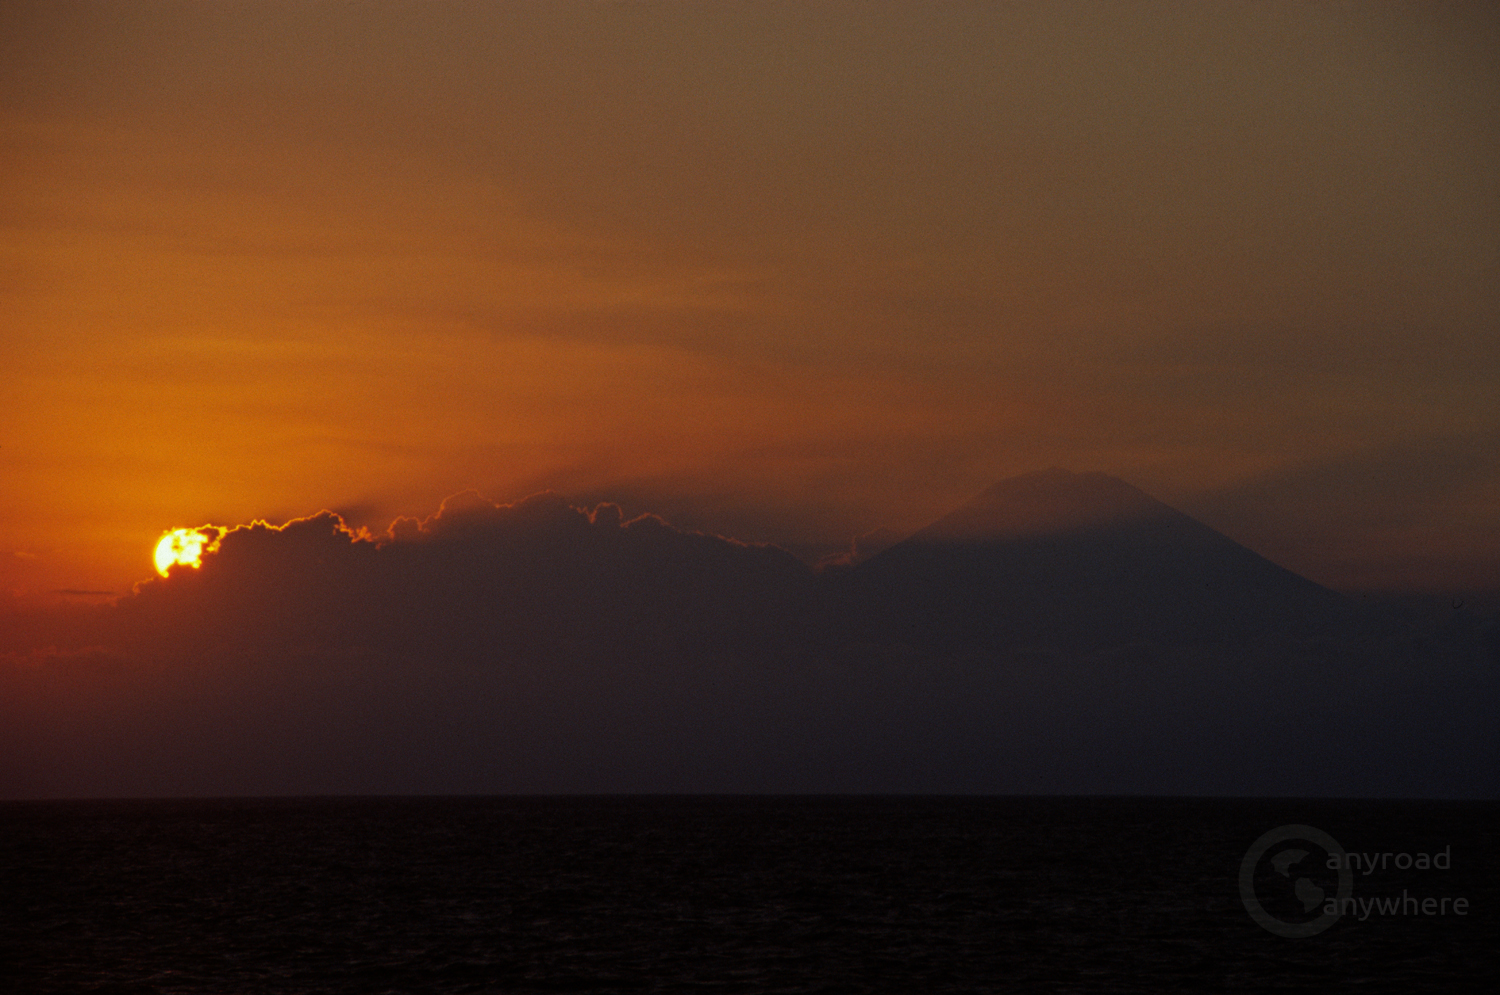 The sunset with Bali's Mount Agung from Lombok